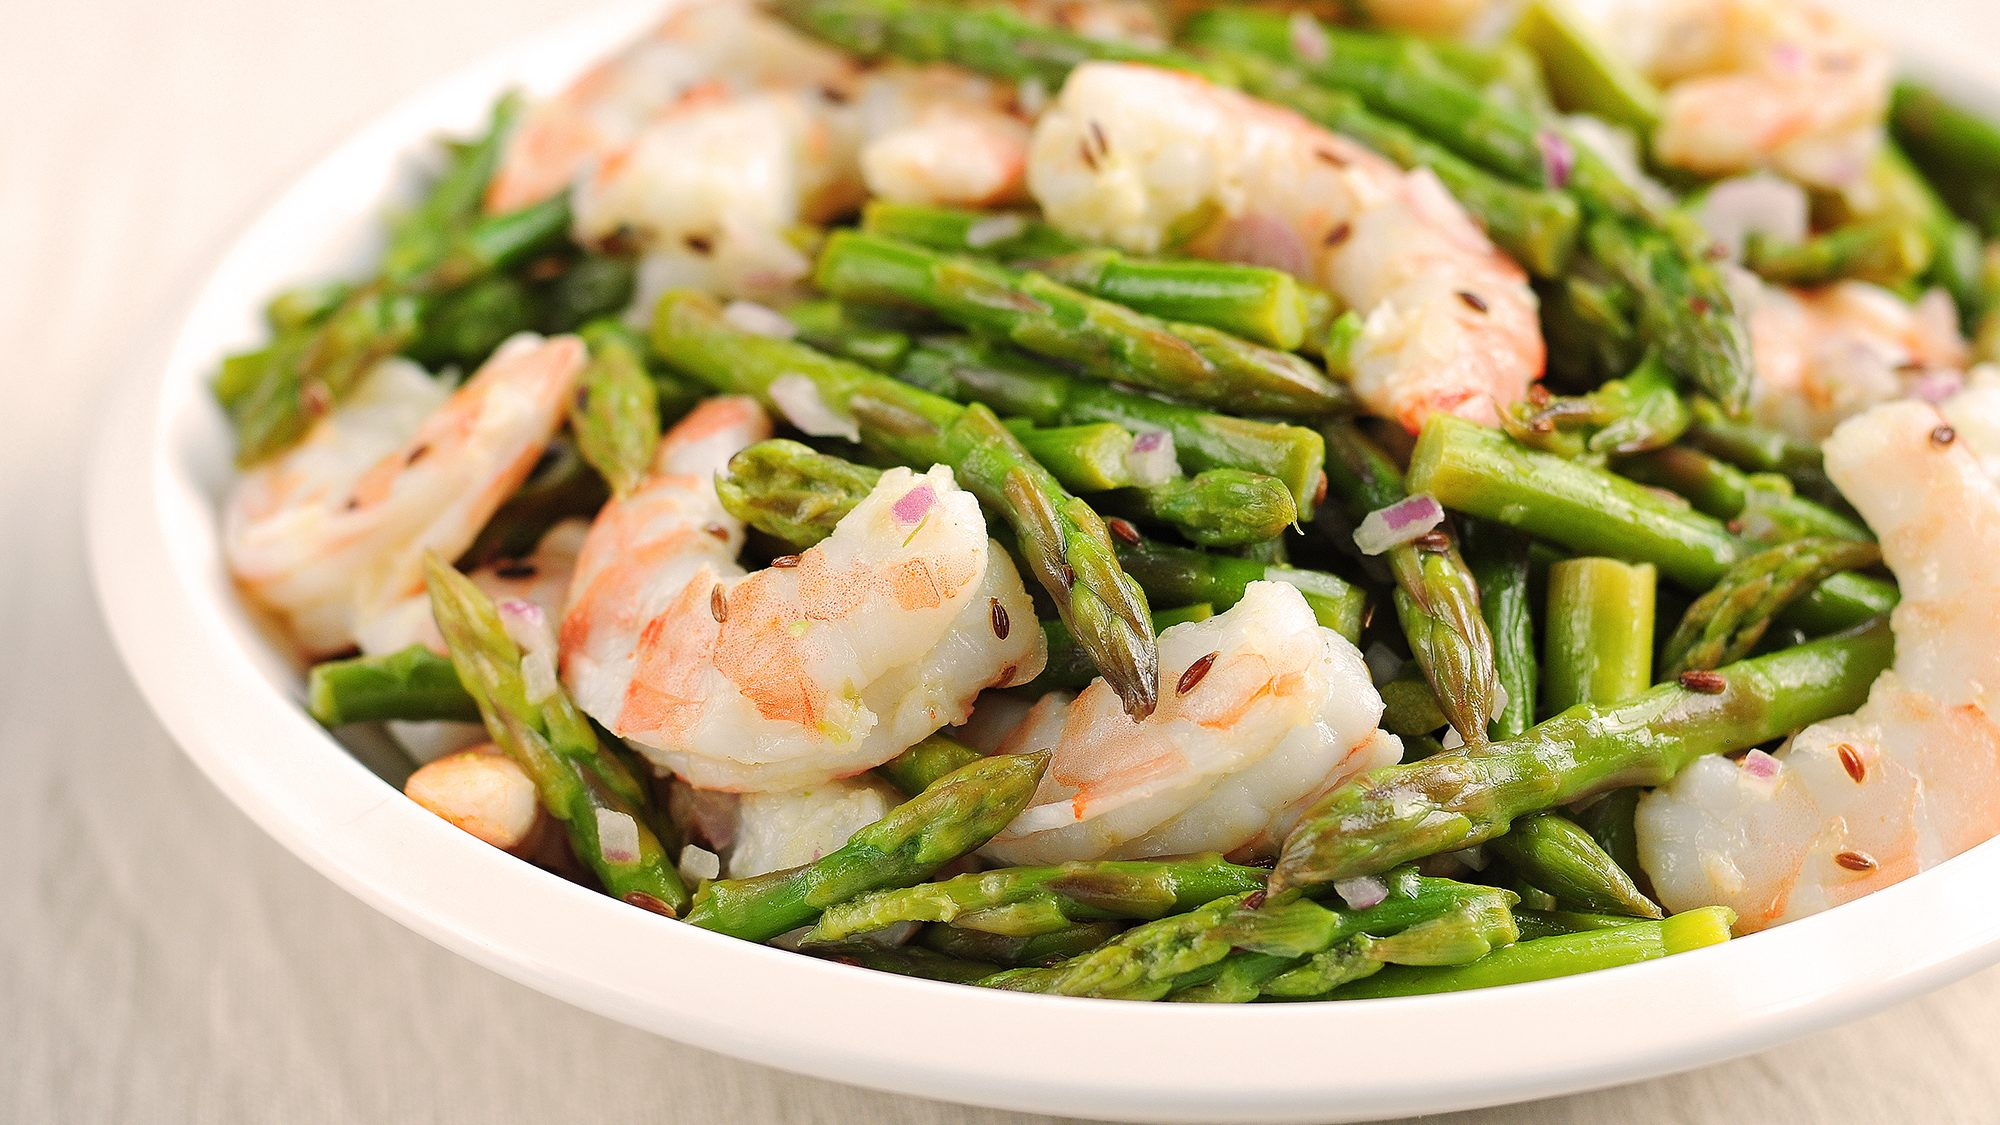 asparagus-and-shrimp-salad-with-lemon-dill-vinaigrette-she-wears-many-hats.jpg